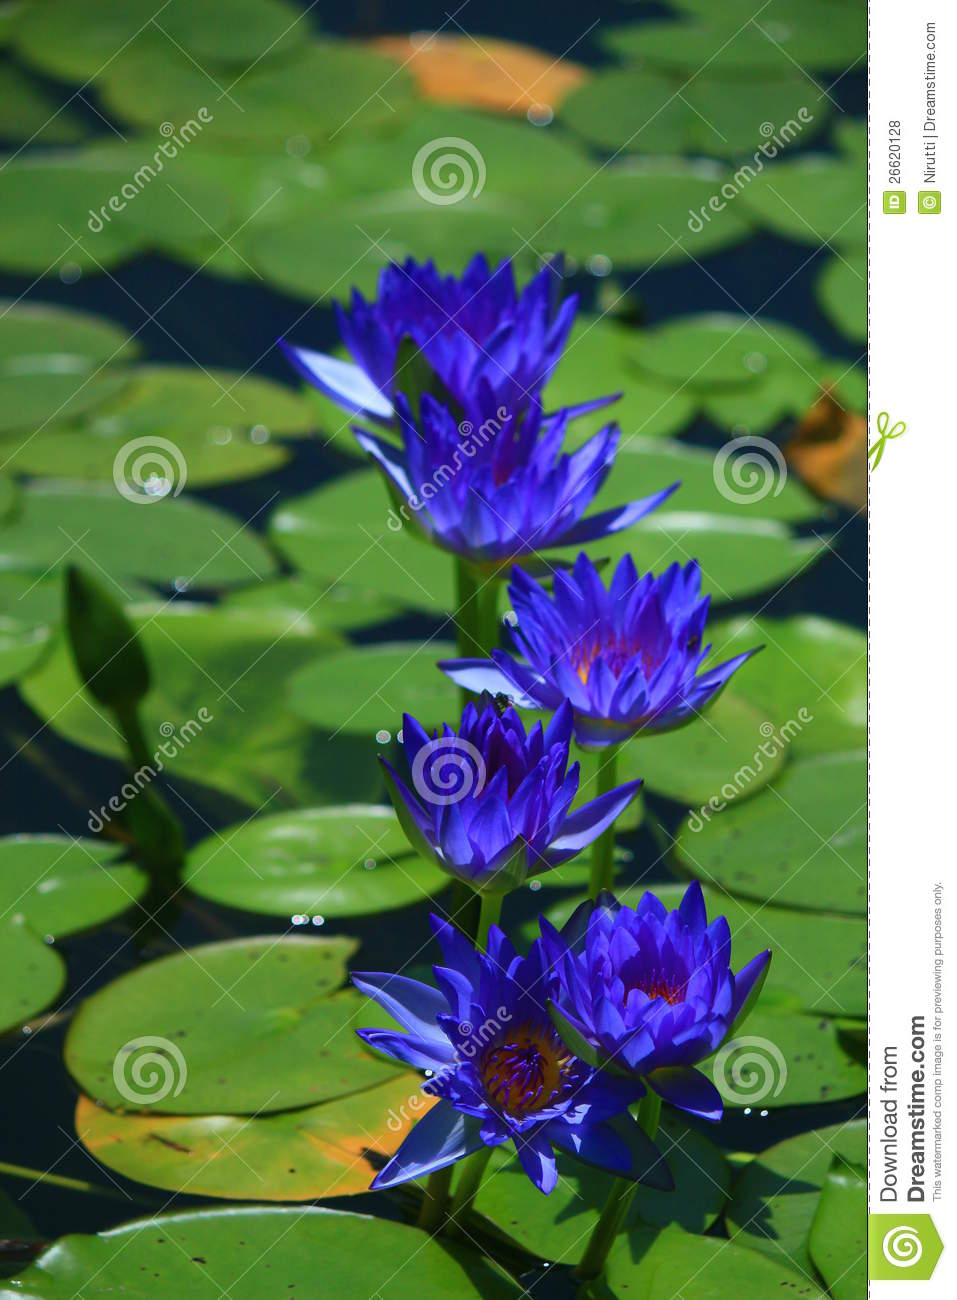 how to grow lotus from stem